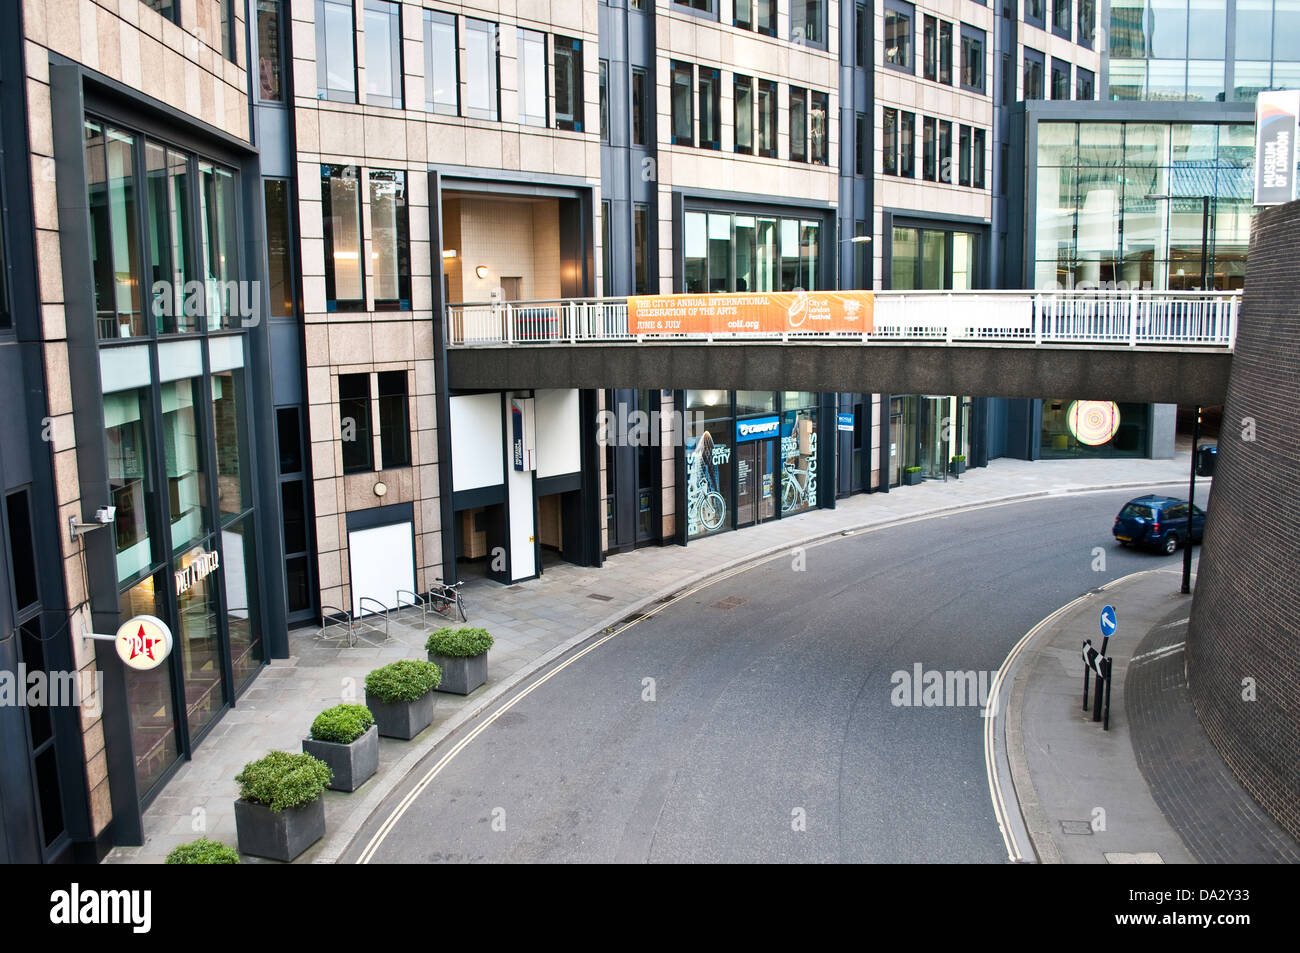 Roundabout at London Wall, City of London, UK - Stock Image